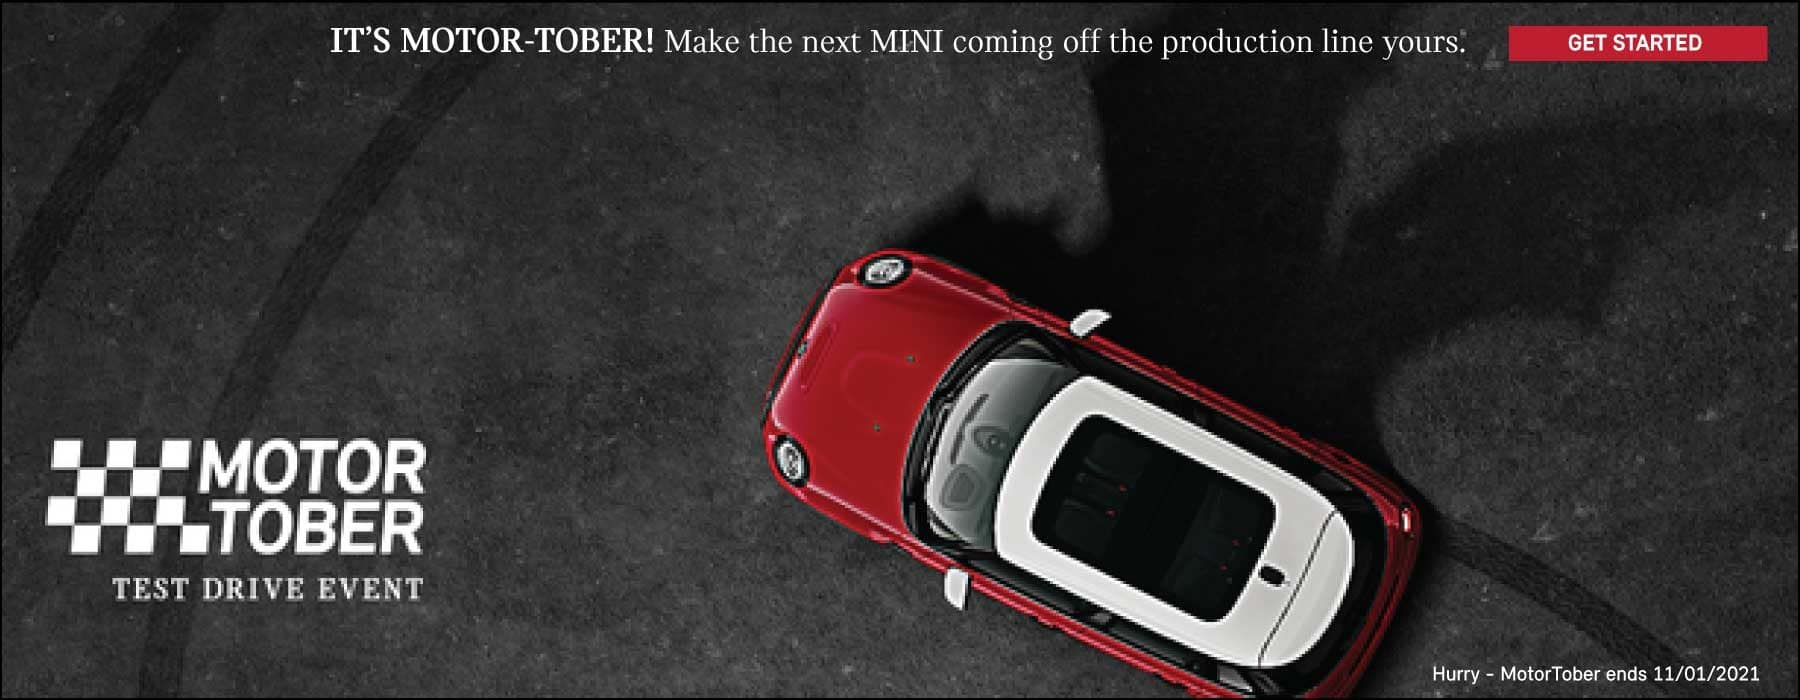 MOTOR TOBER TEST DRIVE EVENT. ENDS 11/01. CLICK TO GET STARTED